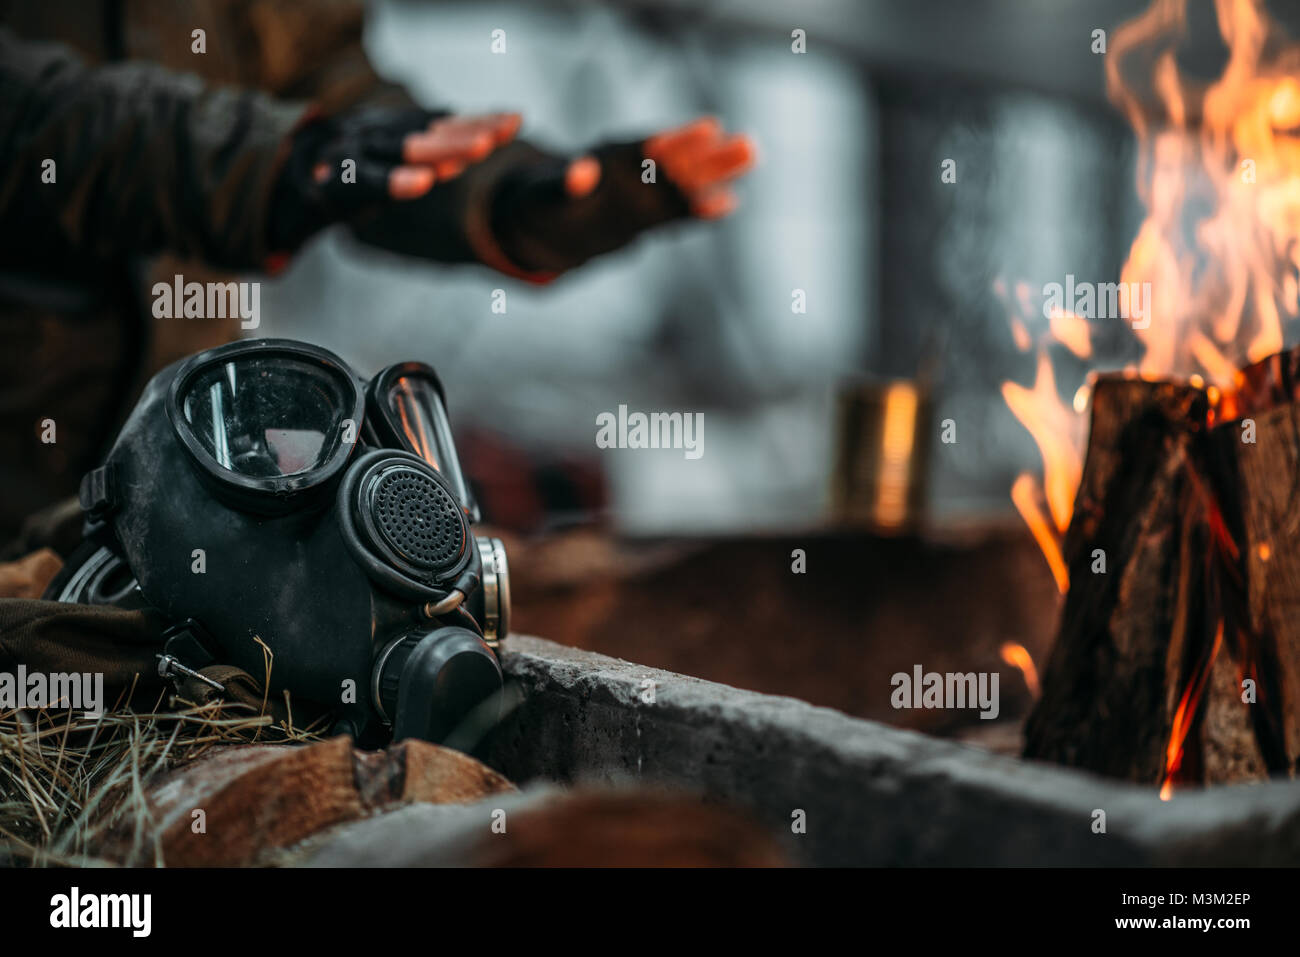 Stalker, male person warms his hands on fire. Post apocalyptic lifestyle with gas mask, doomsday, Stock Photo